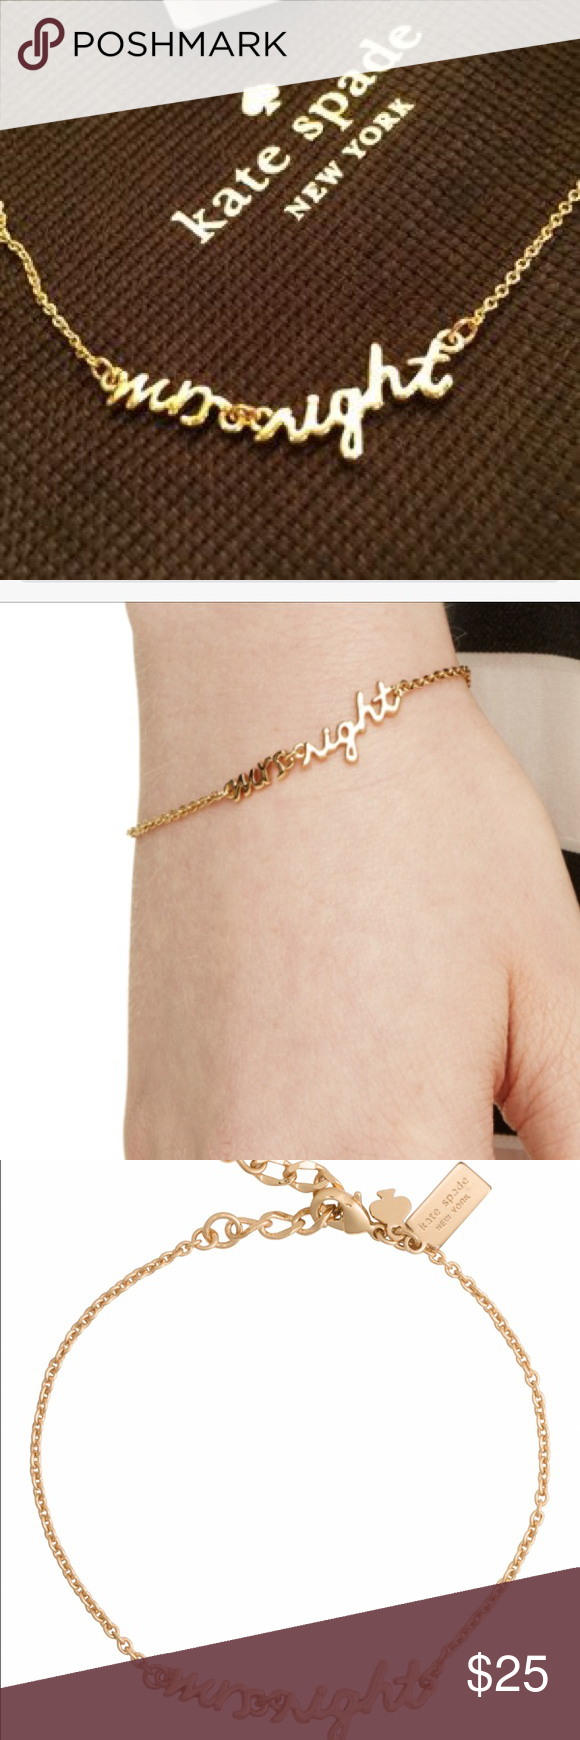 Kate Spade Mrs Right bracelet New with tags Kate Spade Mrs Right bracelet kate spade Jewelry Bracelets